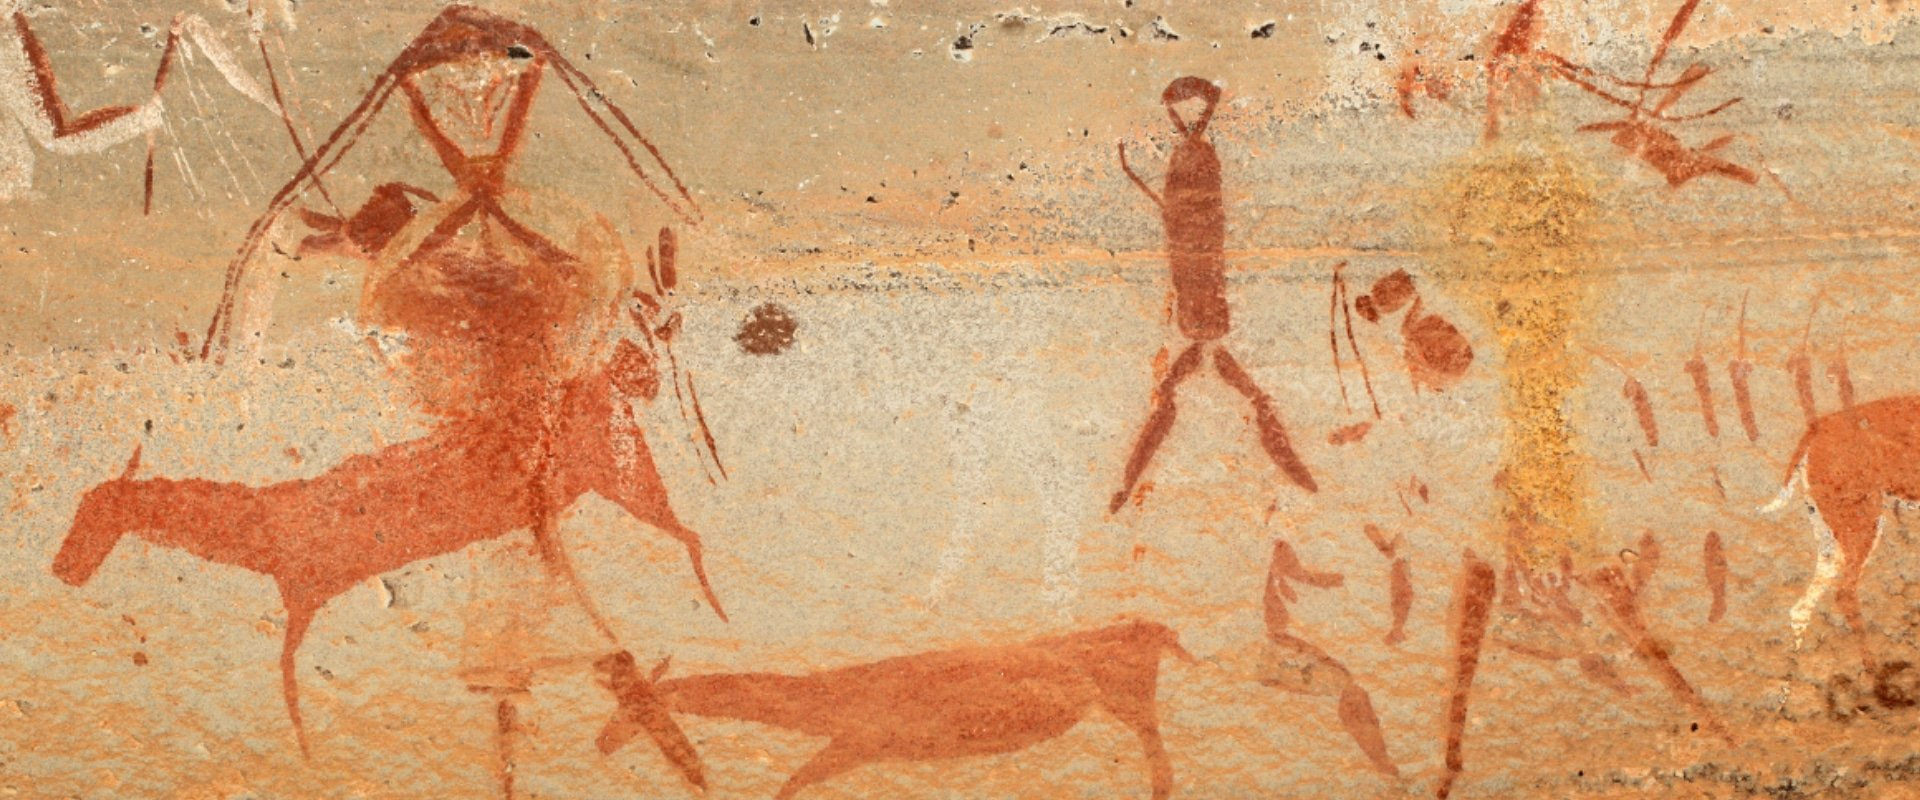 Step back in time to view San rock art